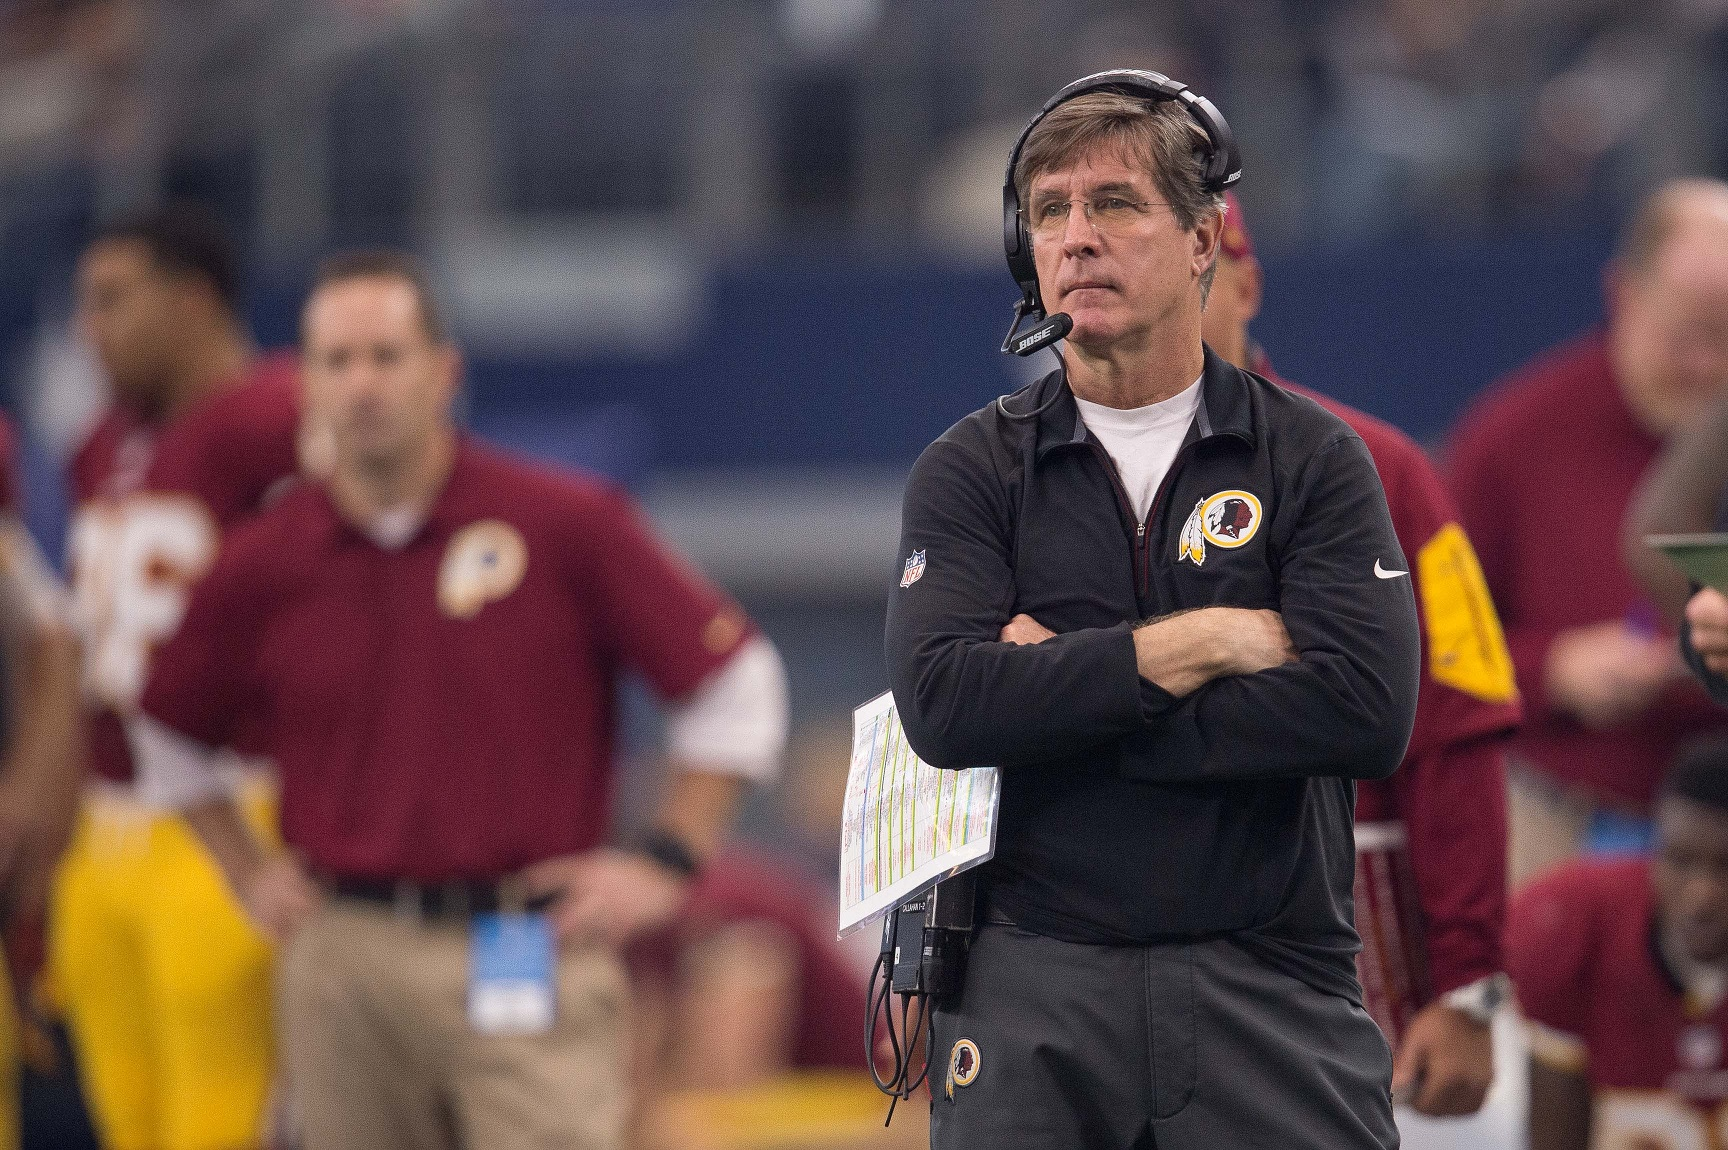 Bill Callahan, nombrado coach interino de Redskins